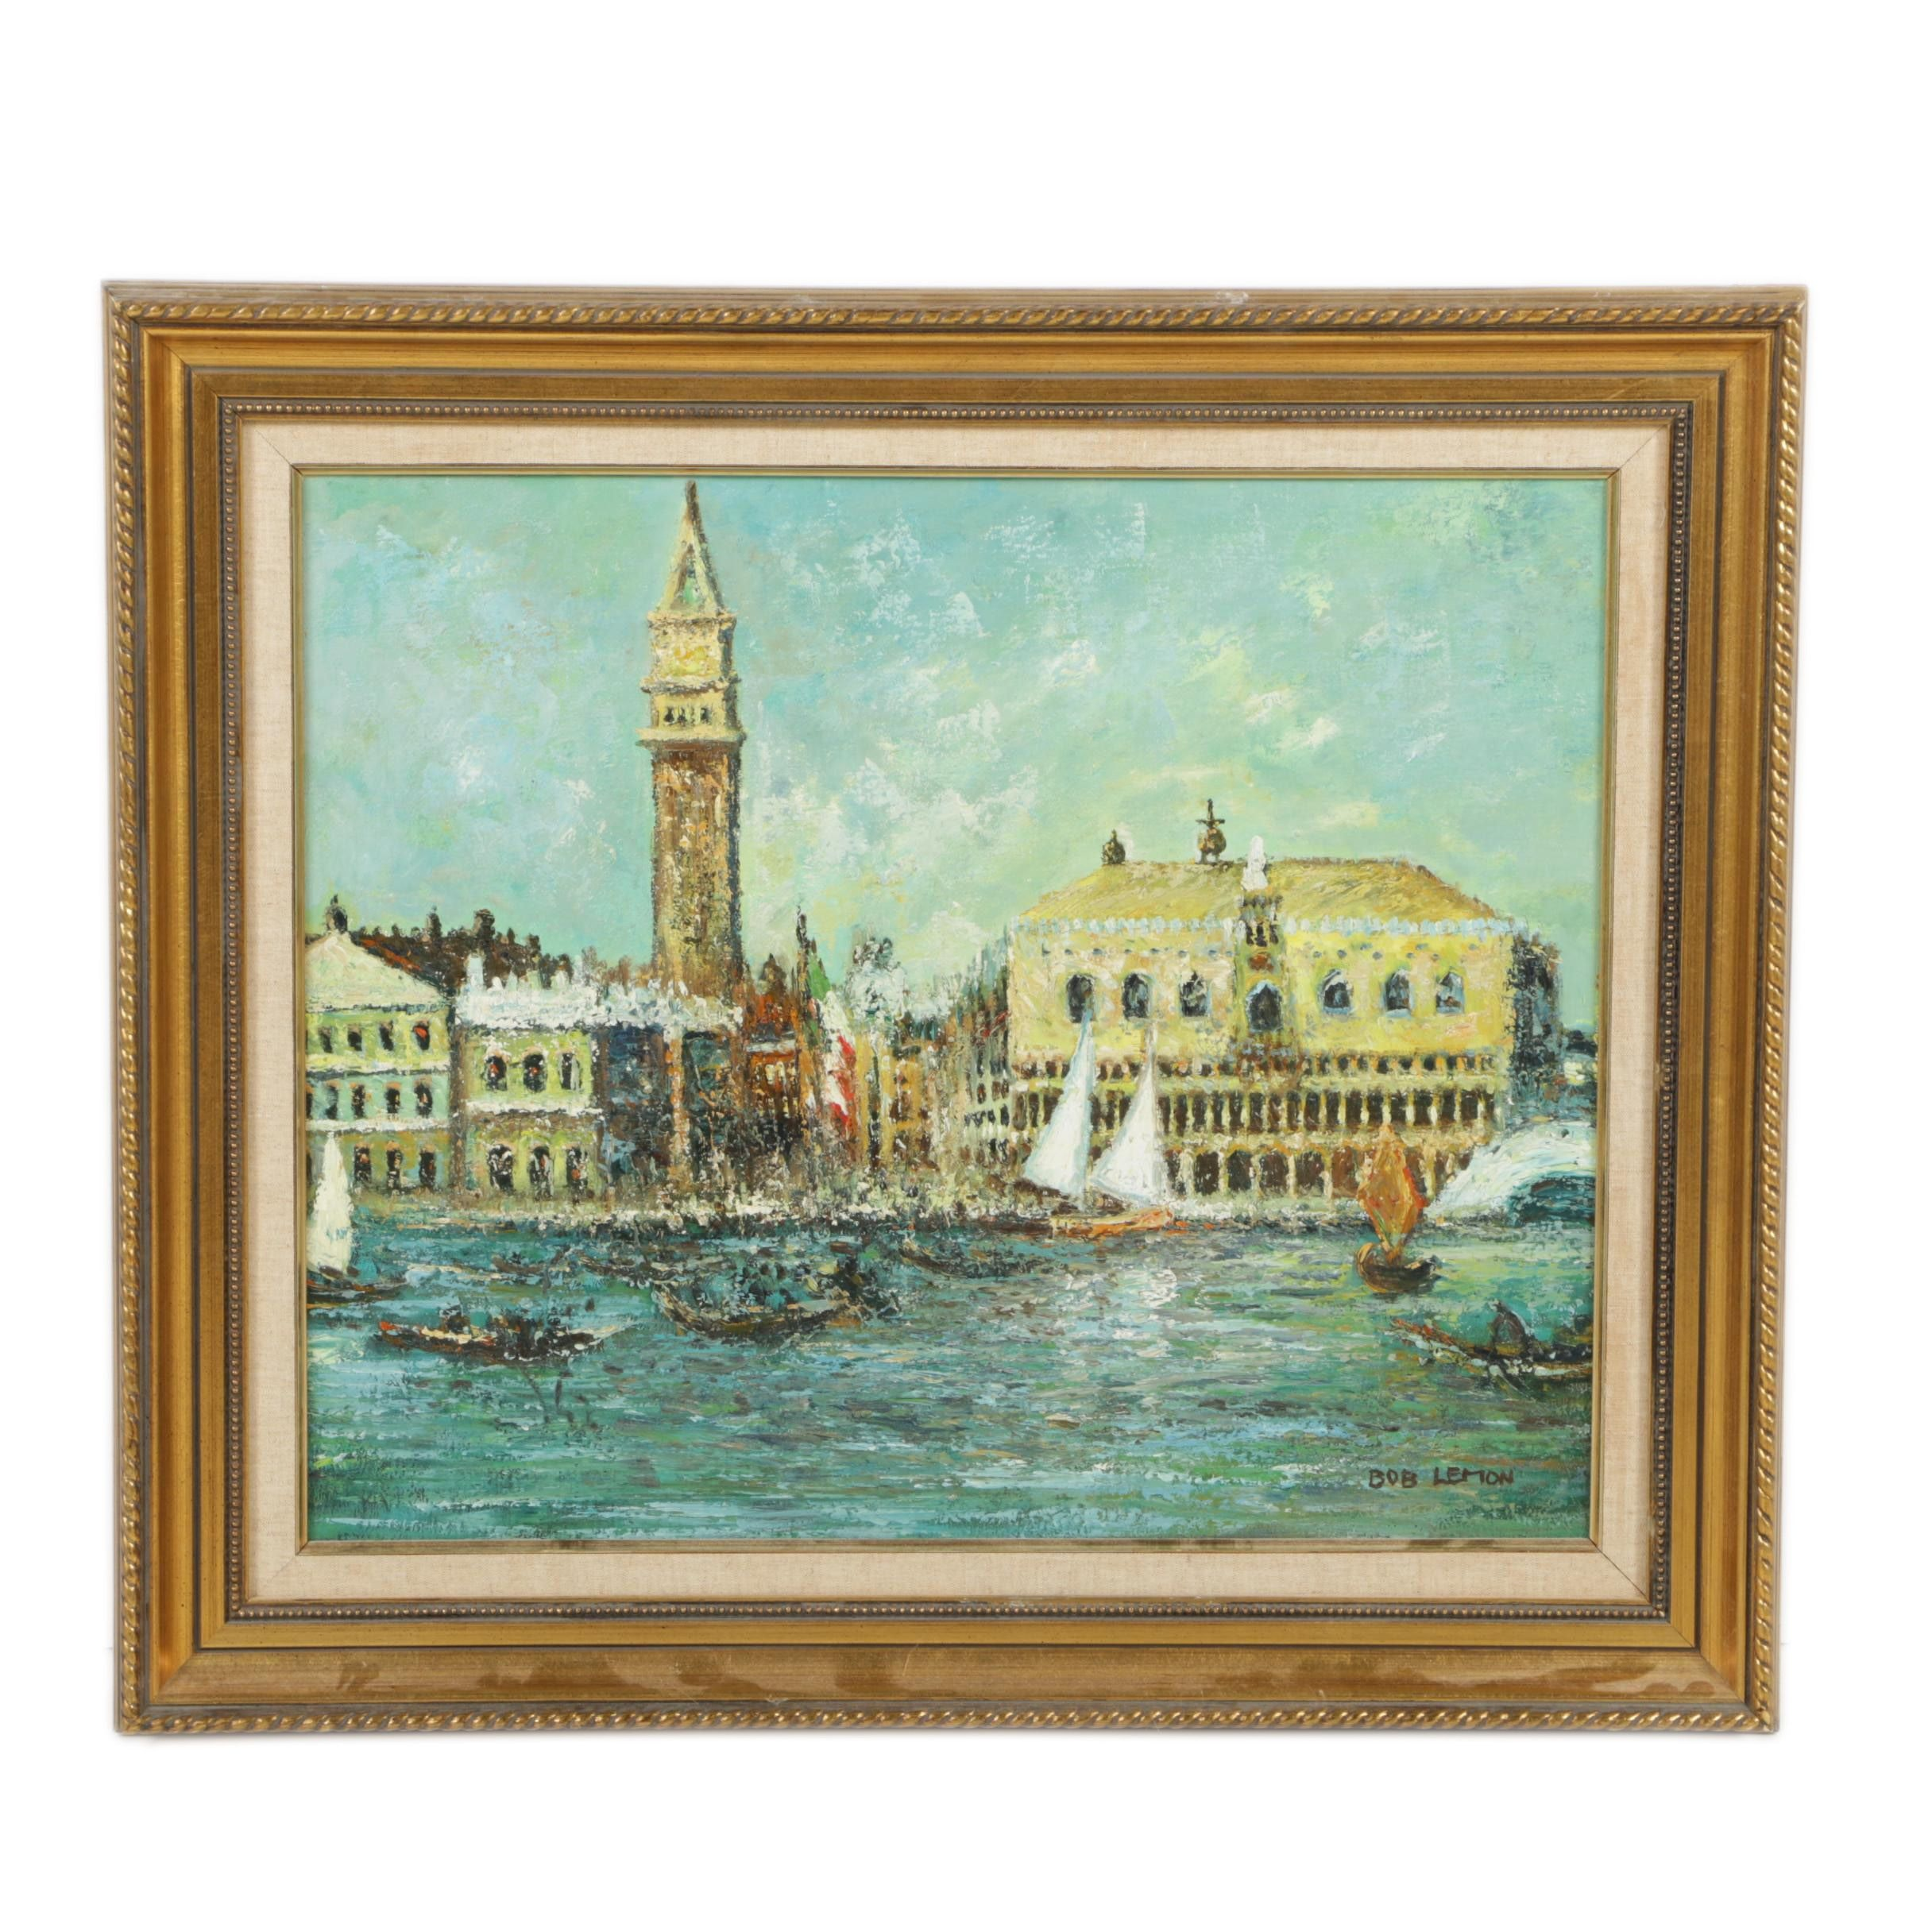 Bob Lemon Oil Painting of a Canal and San Marco Campanile